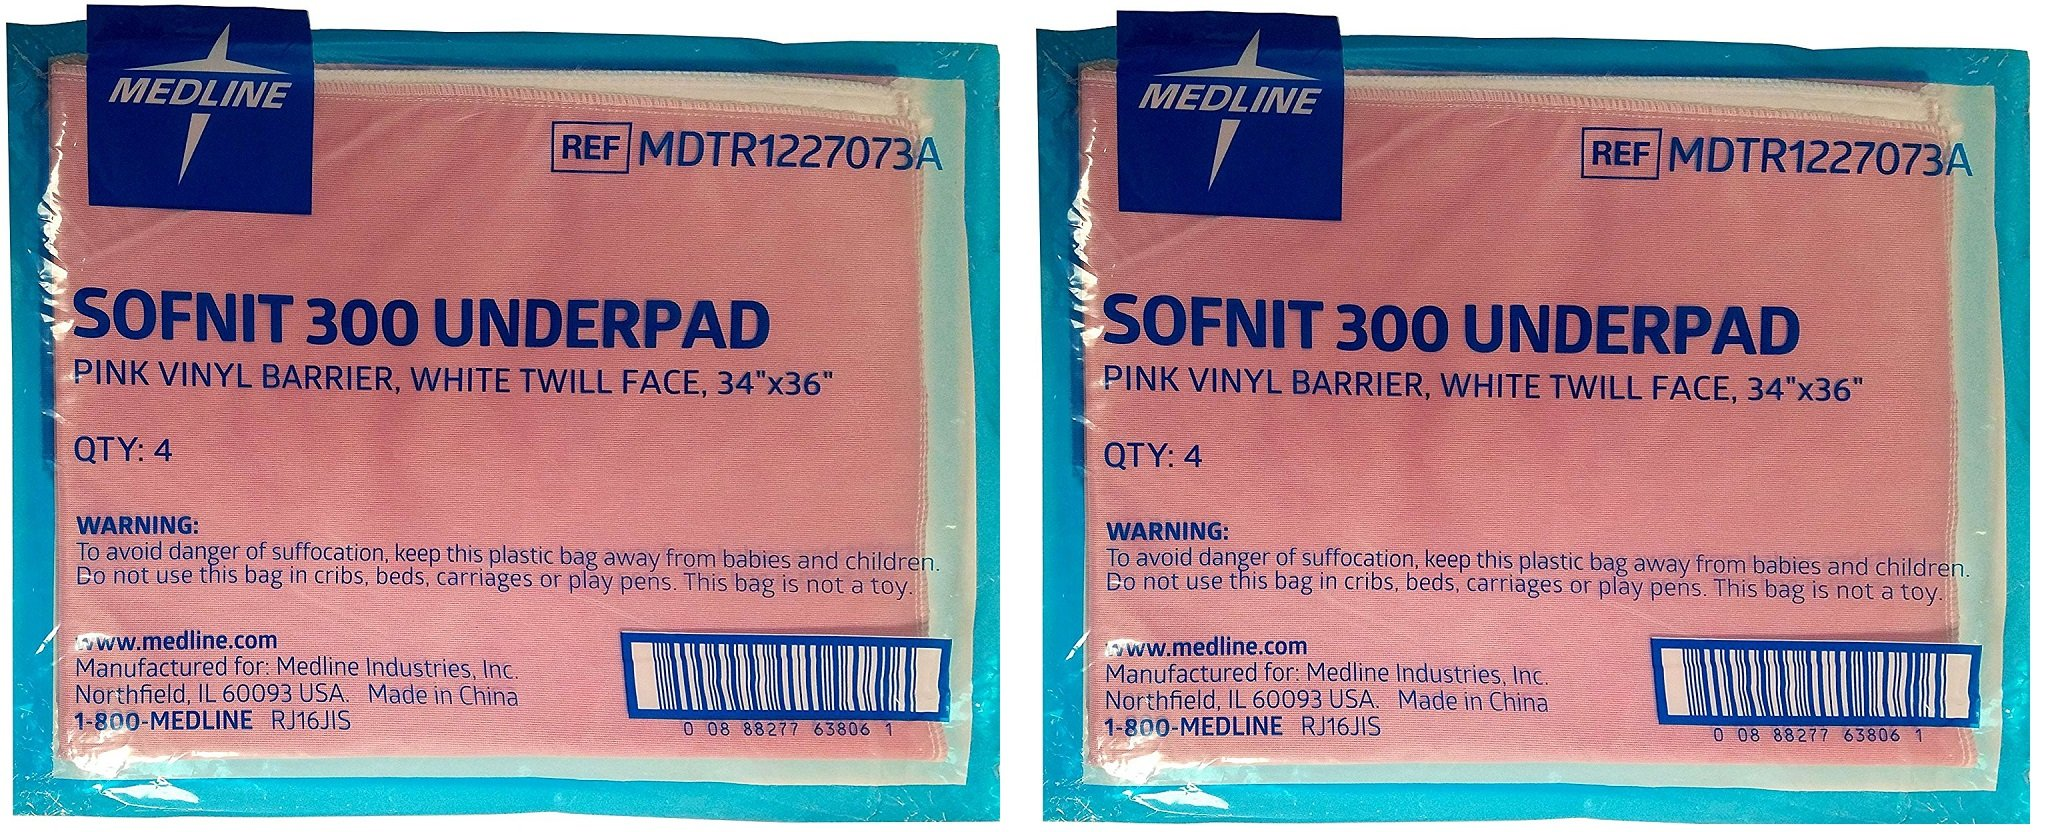 Medline Sofnit 300 LDtalV, Pack of 8 Large Washable Pink Underpads, 34 inx36 in for use with incontinence, reusable pet pads, reusable bed pads, great for dogs, cats, and bunny